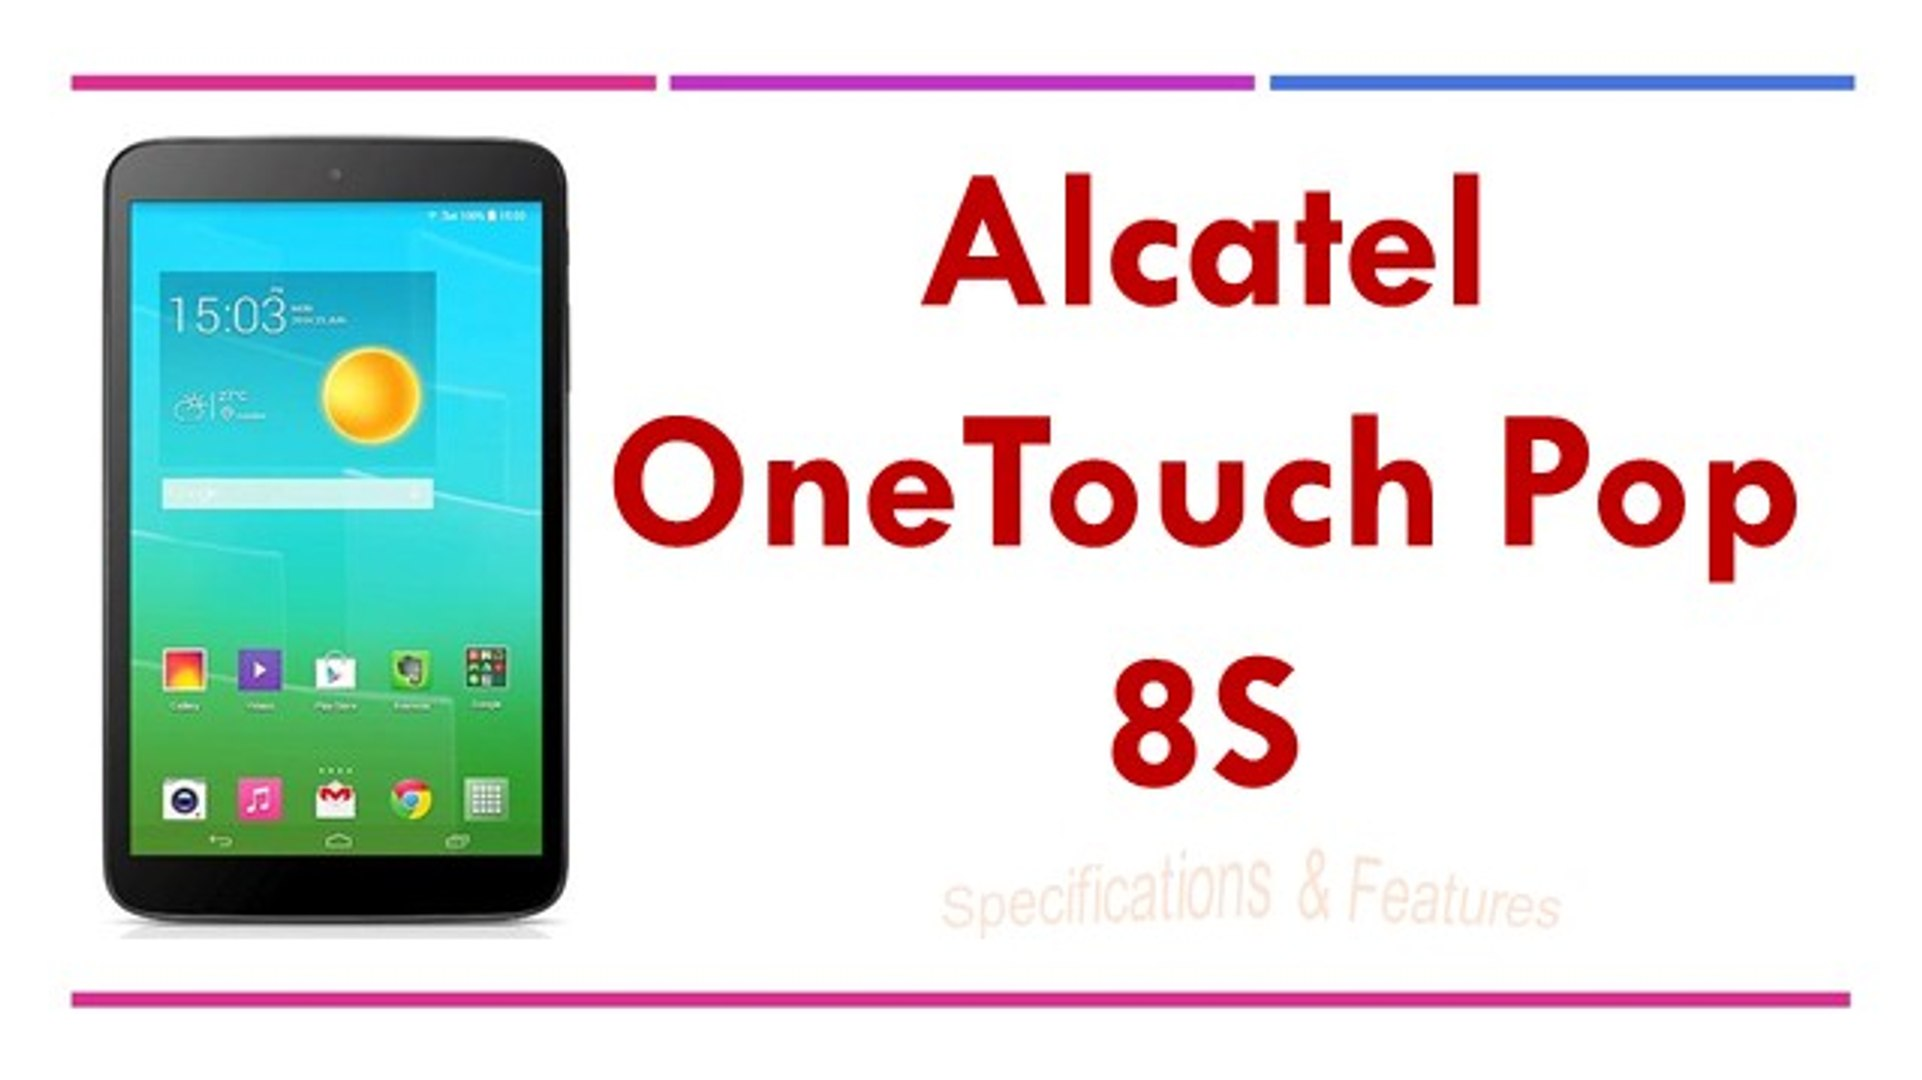 Alcatel OneTouch Pop 8S Specifications & Features